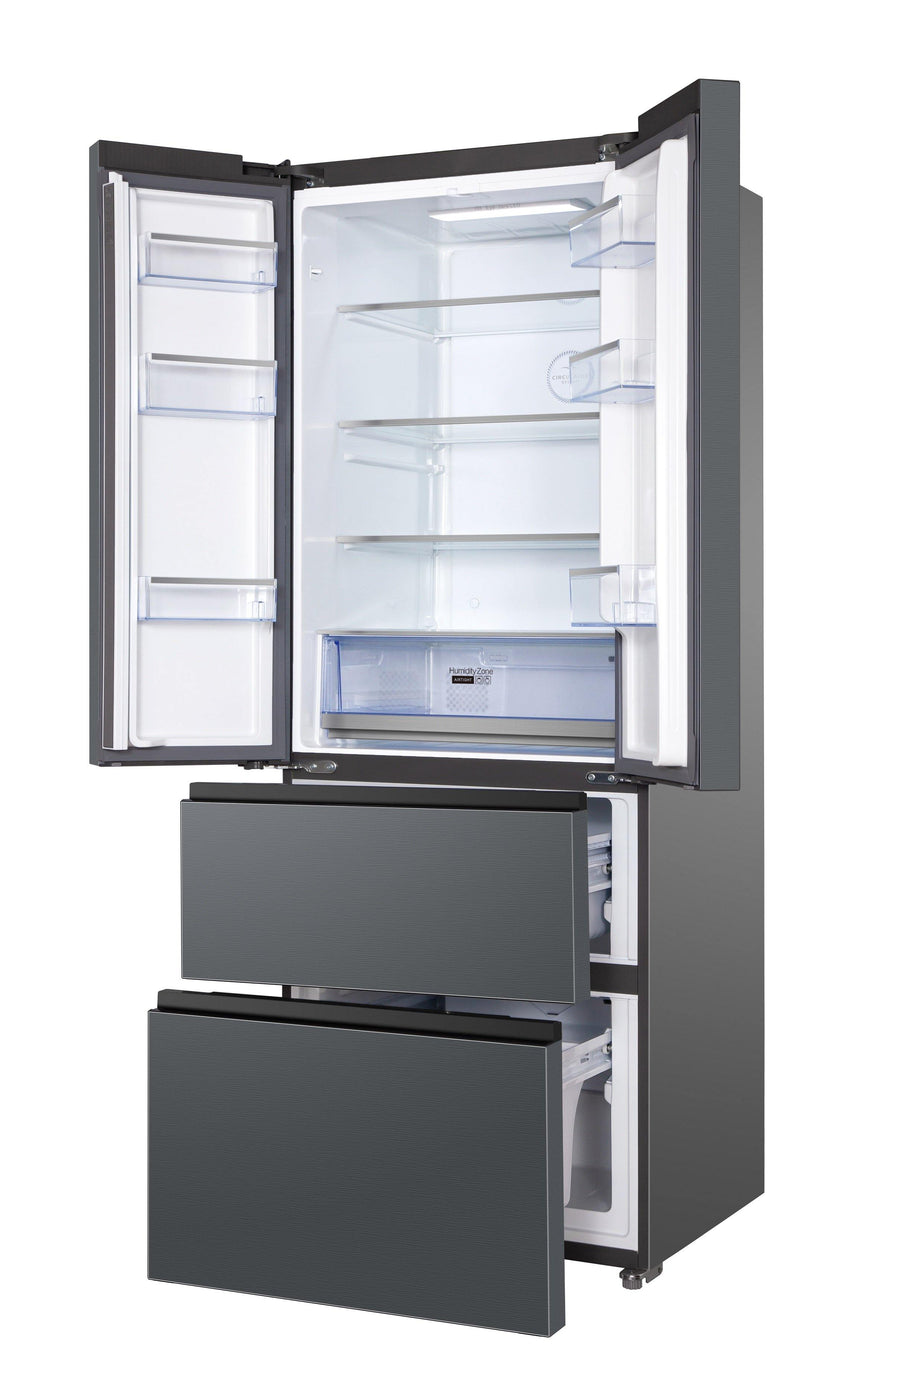 TCL RF436GM1110 Multi-door 70 cm Total No-frost  Fridge Freezer 390L - A+ Rated